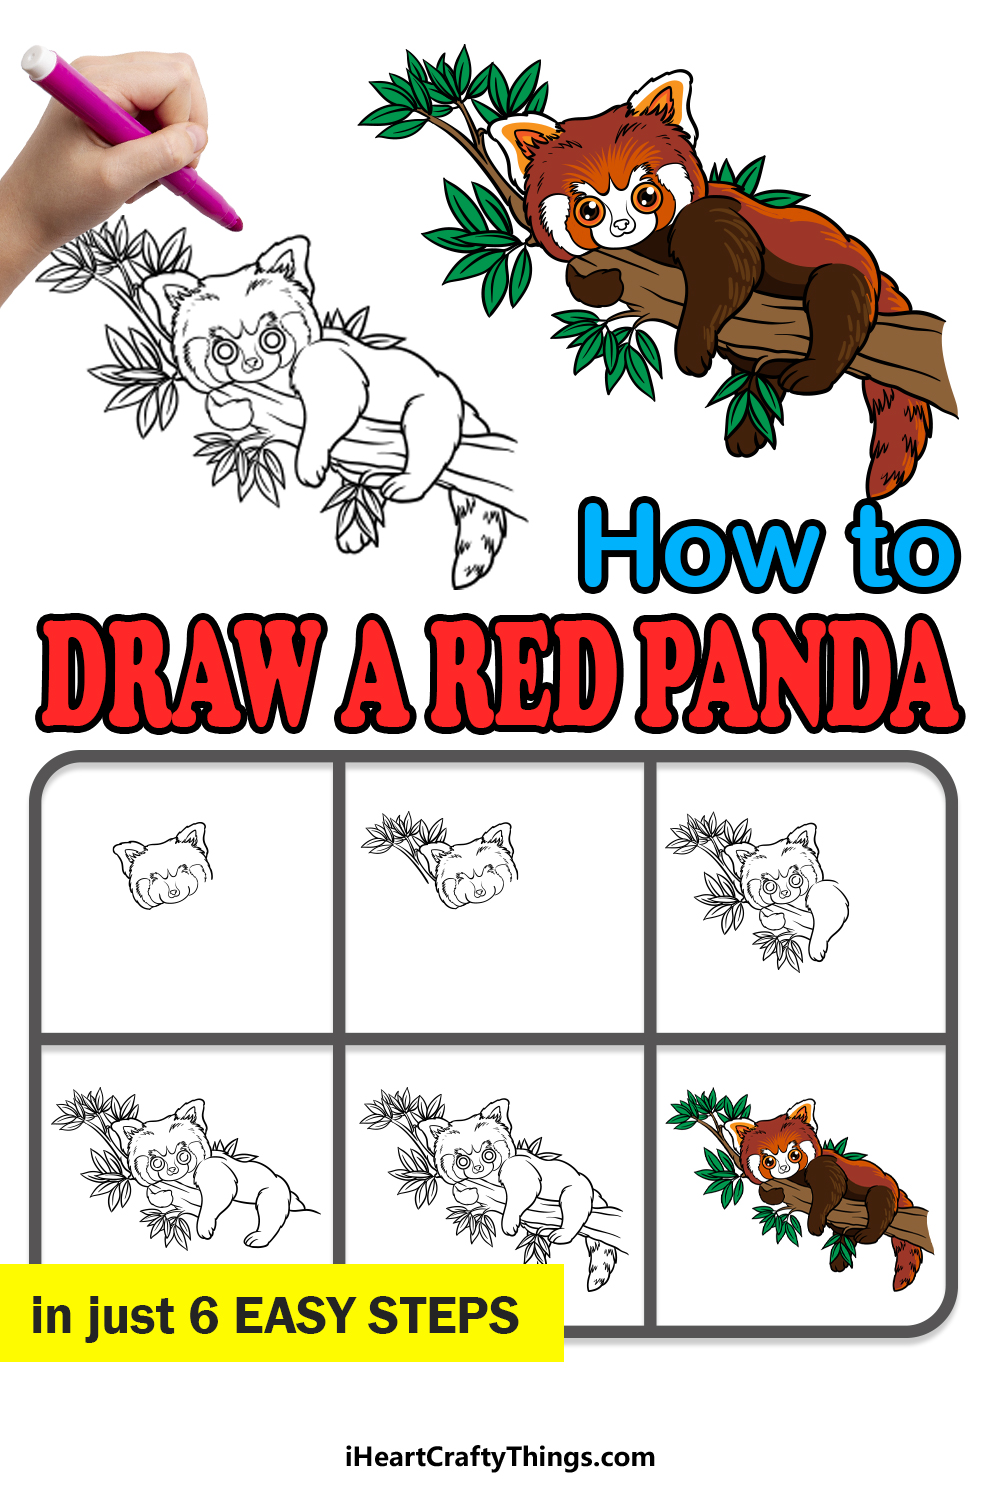 how to draw a red panda in 6 easy steps